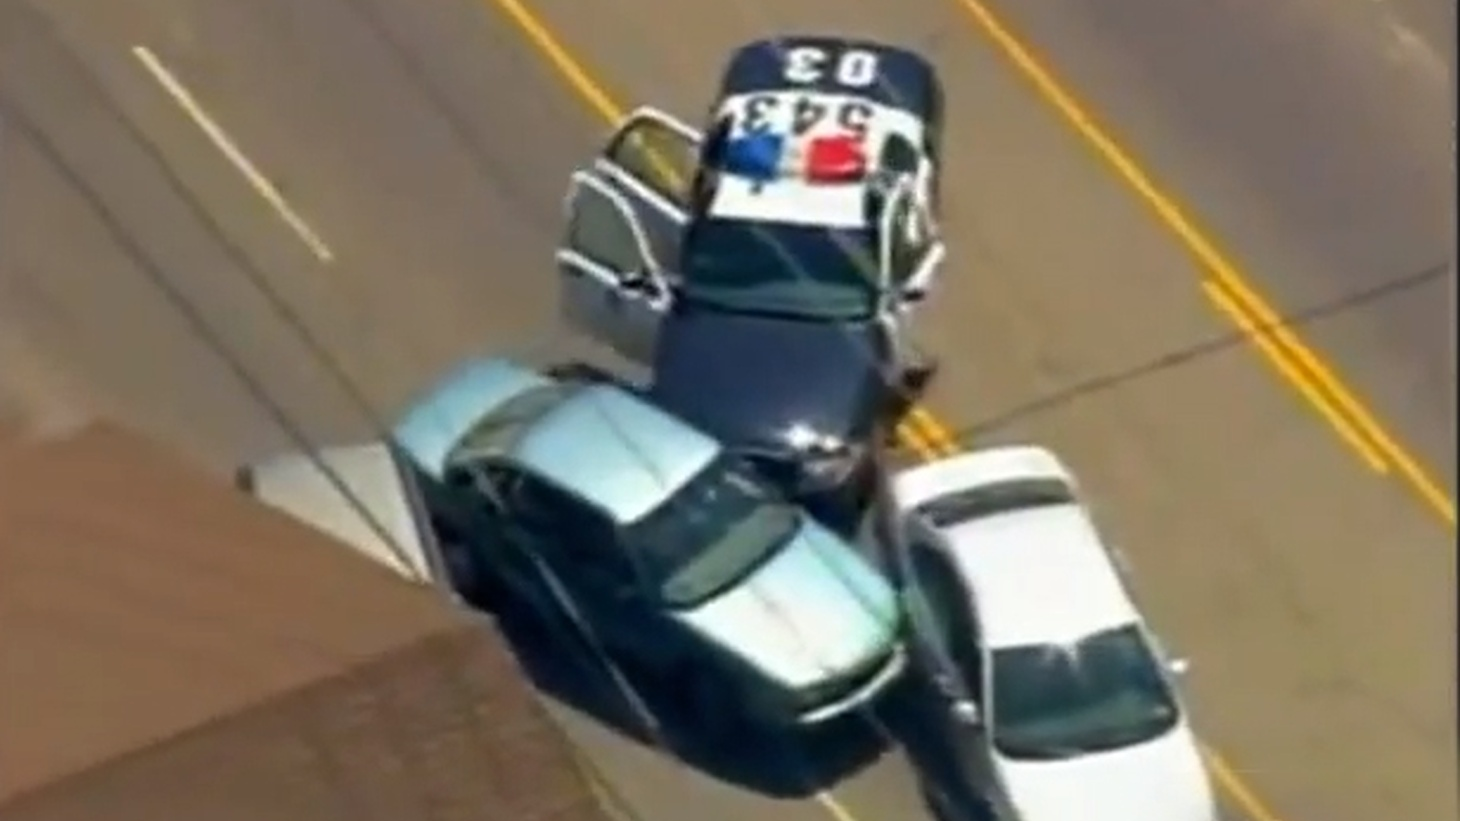 In 1994, 95 million people tuned in to watch O.J. Simpson's slow-motion police chase live on television. This past weekend, the   Los Angeles Times   released an investigative report about car chases, which found that the LAPD leads the state in bystander injuries. One in 10 LAPD pursuits results in injury to a bystander.